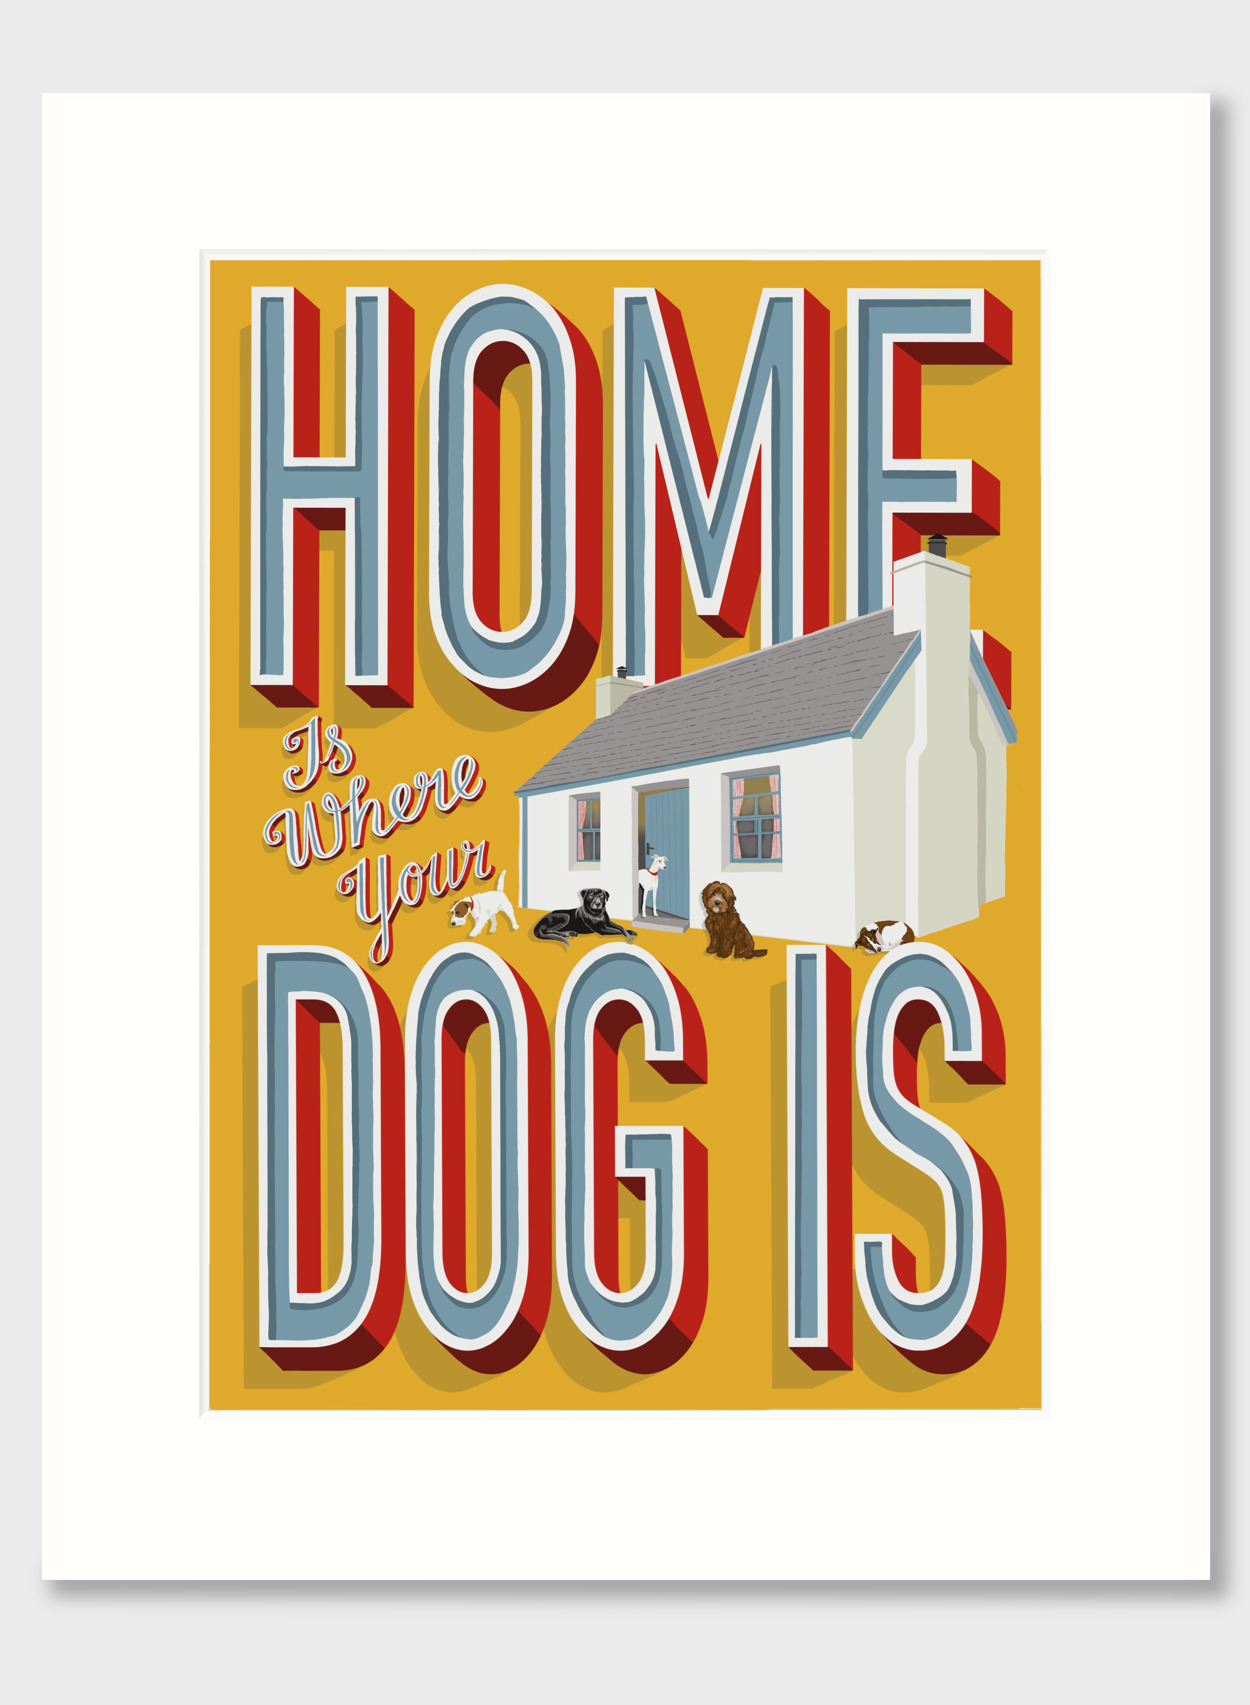 Home Is Where Your Dog Is Mounted Print   The Enlightened Hound